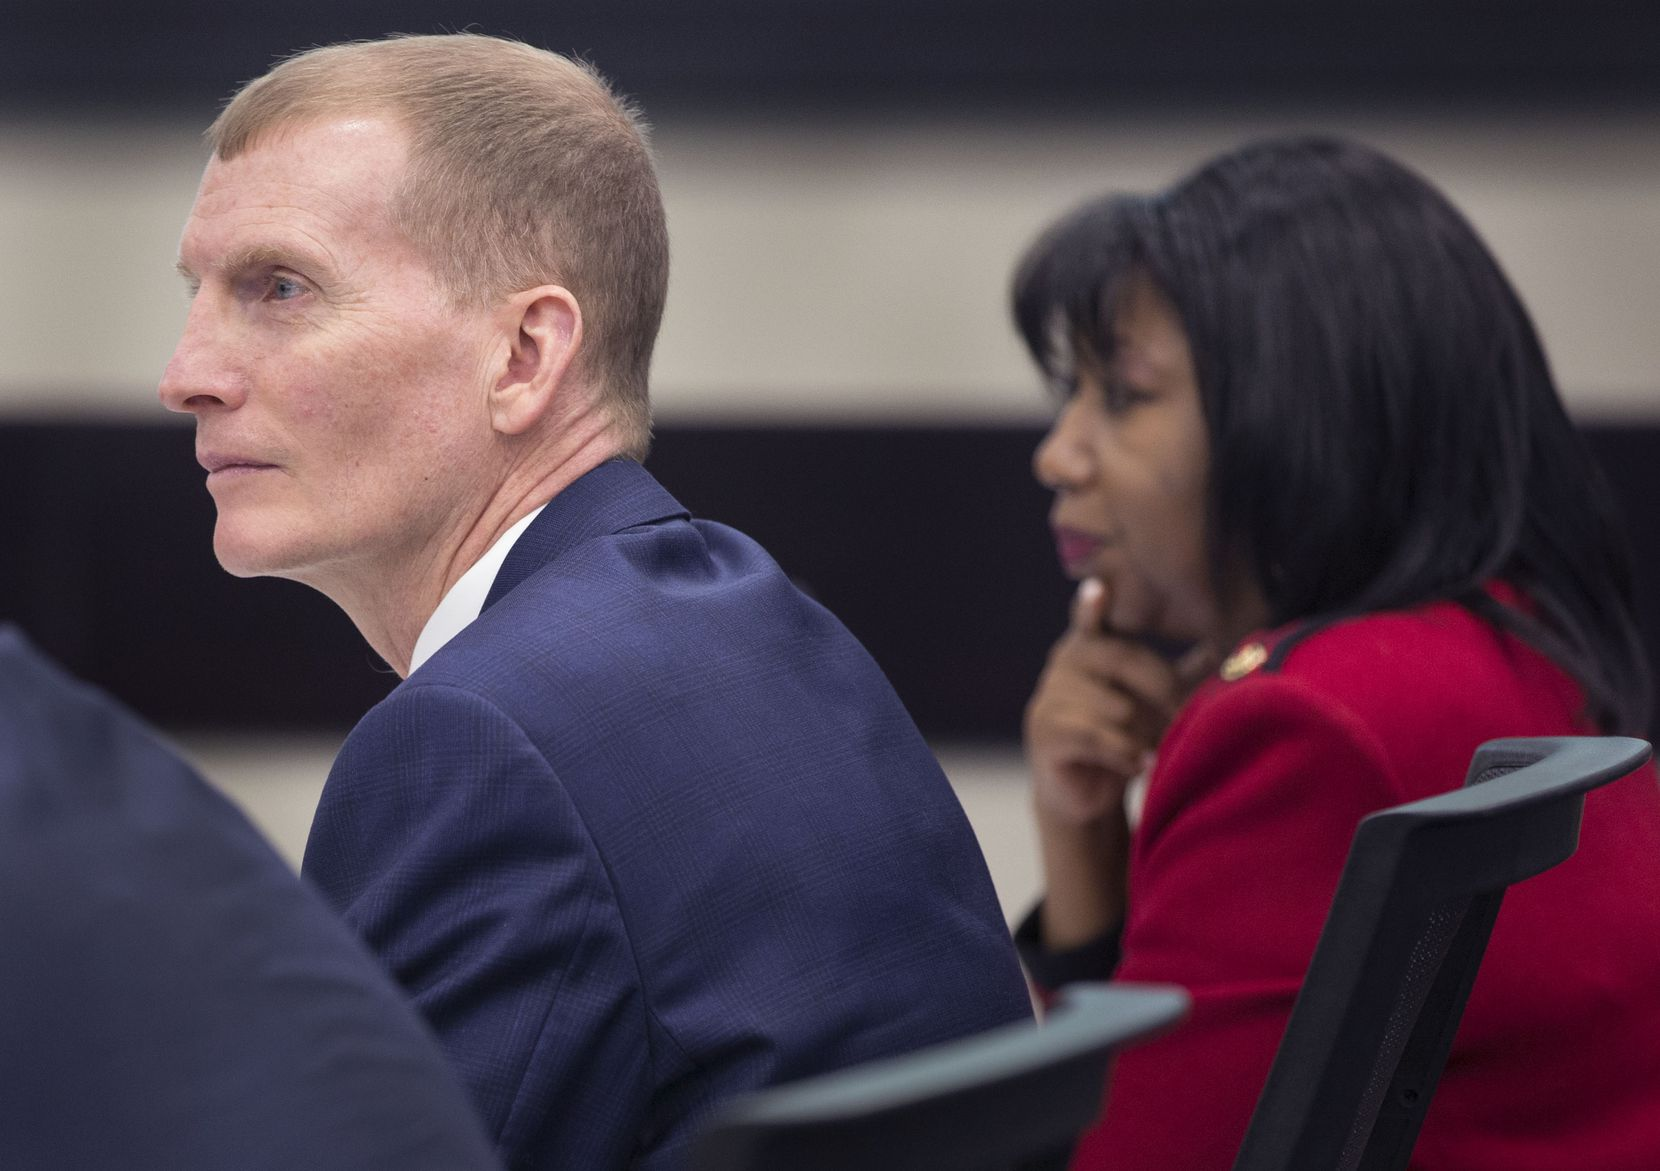 From left, Phillip Jones, VisitDallas president and CEO, and Joyce Williams, VisitDallas chair elect, during a meeting with city council members in the Dallas City Council briefing room at Dallas City Hall in Dallas on Tuesday, February 19, 2019. The meeting discussed an audit of VisitDallas.